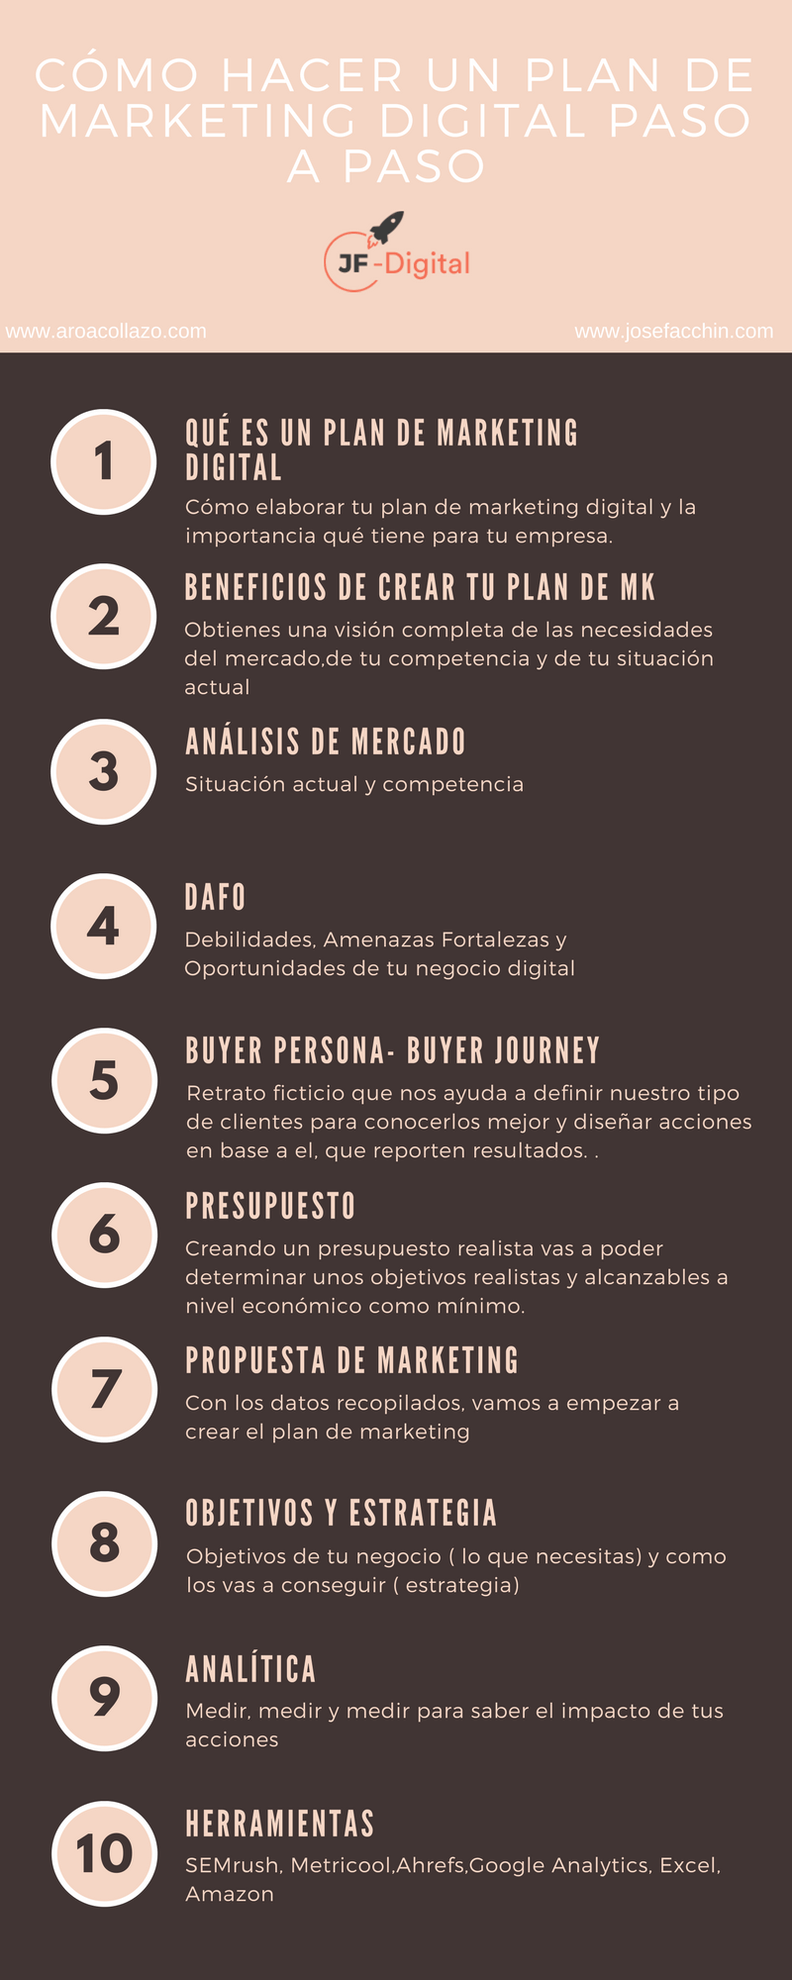 Los 9 pasos necesarios para realizar un plan de marketing digital